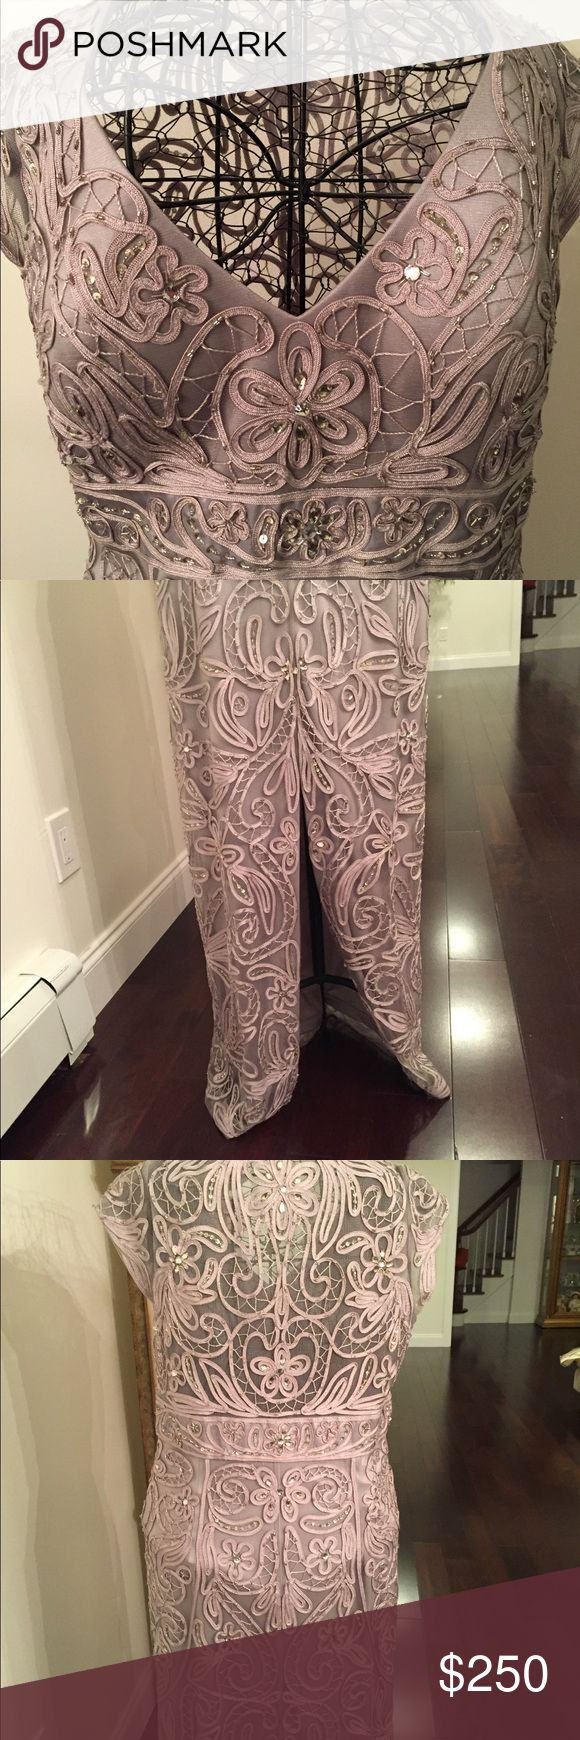 Stunning Sue Wong Taupe beaded gown. Sz 12 Excellent condition- worn one time.  Sue Wong Taupe beaded gown with elegant slit in the back.  Absolutely stunning when worn.  This is a must have!! Sue Wong Dresses Wedding